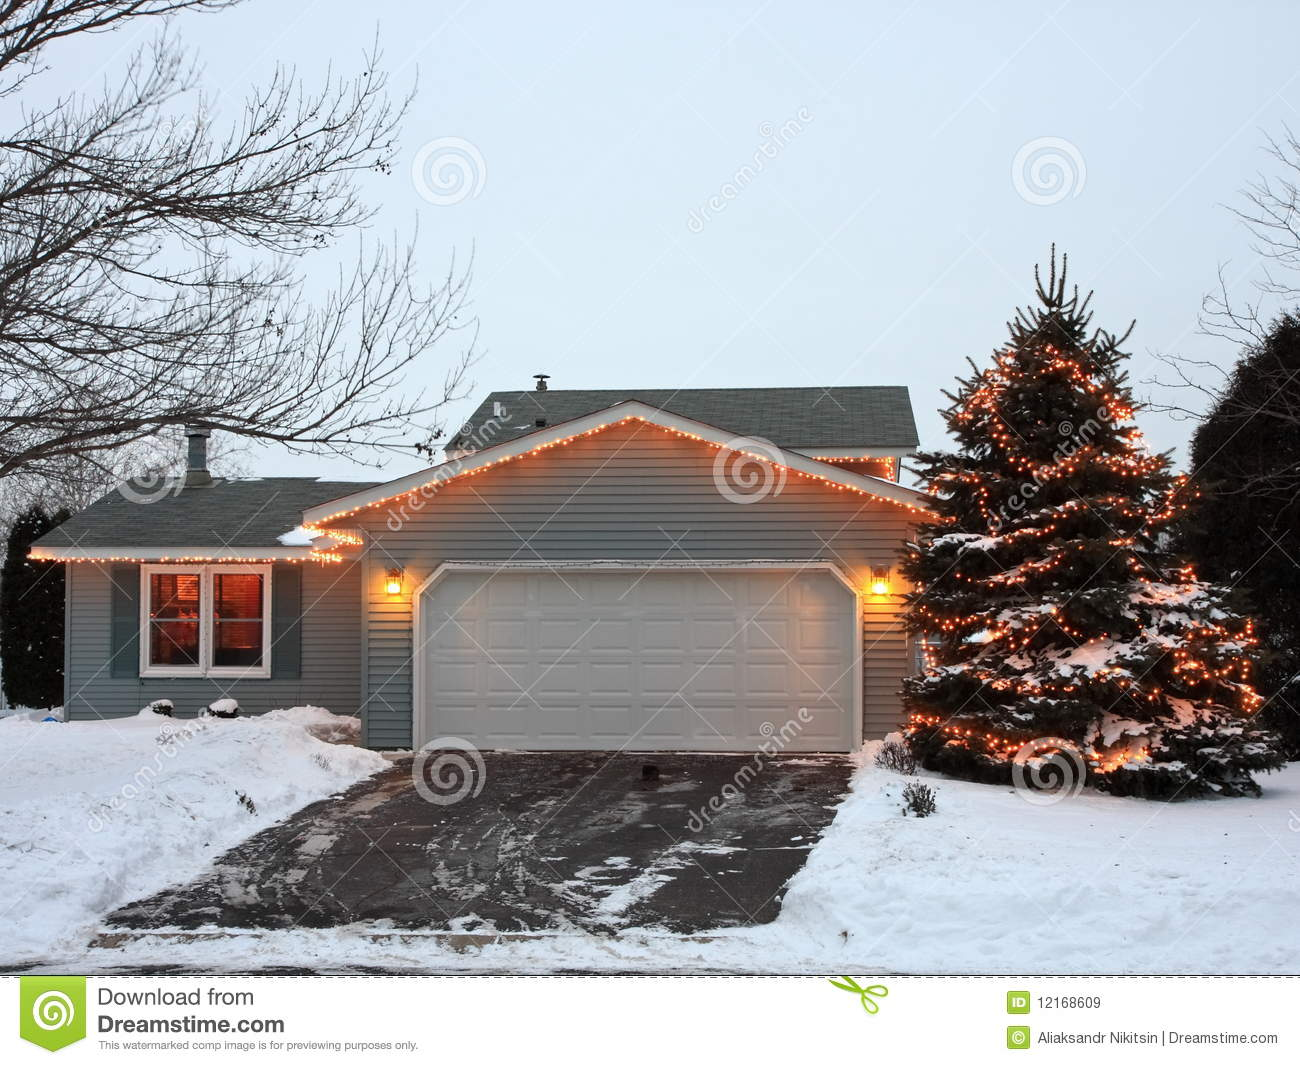 download christmas lights in minnesota with garage stock image image of ornaments xmas